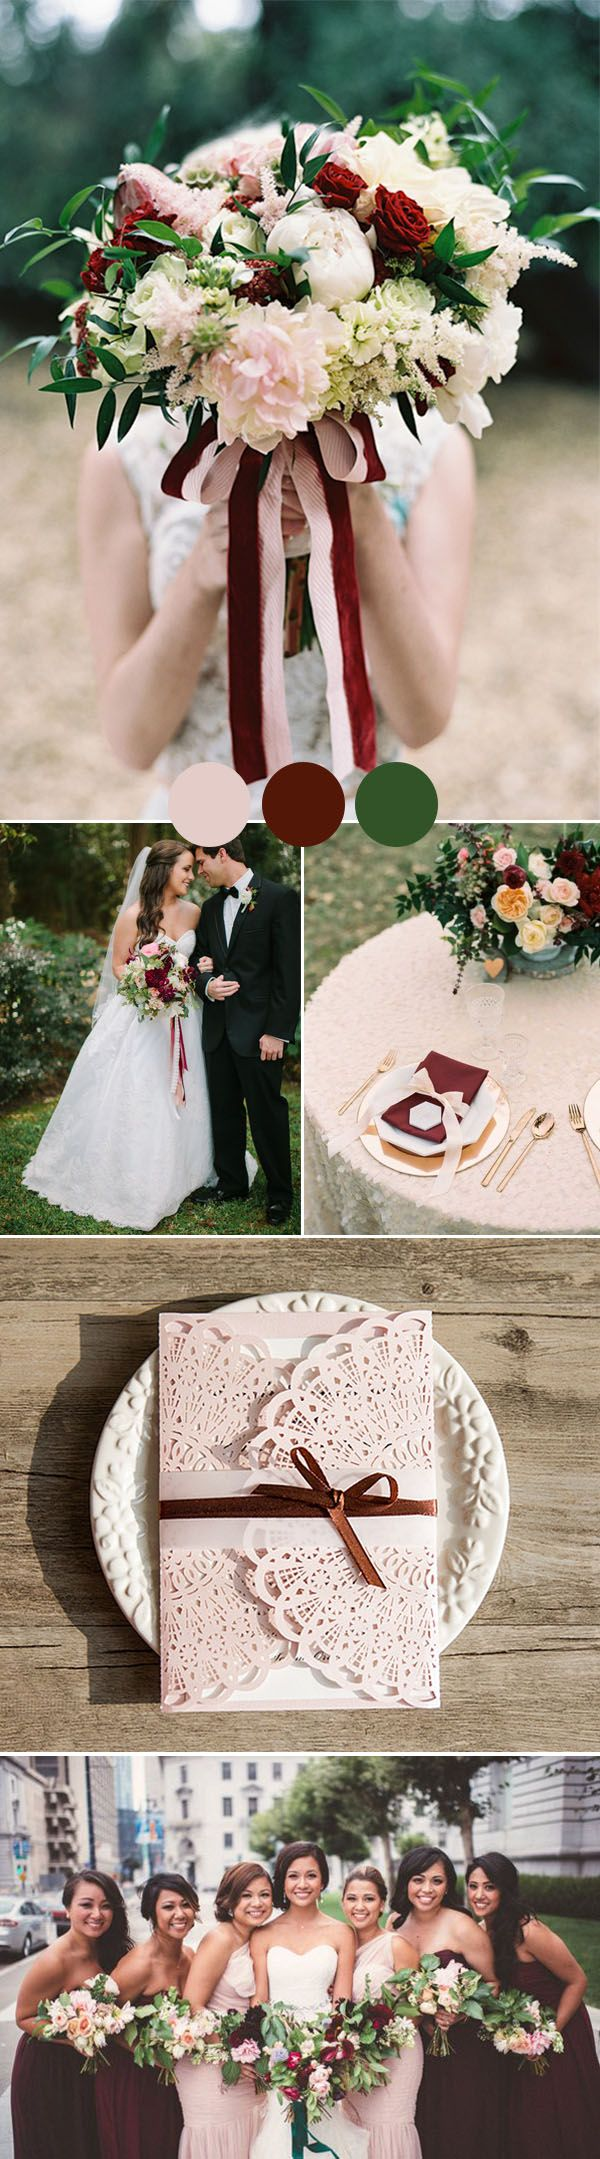 best wedding ideas images on Pinterest Wedding color palettes